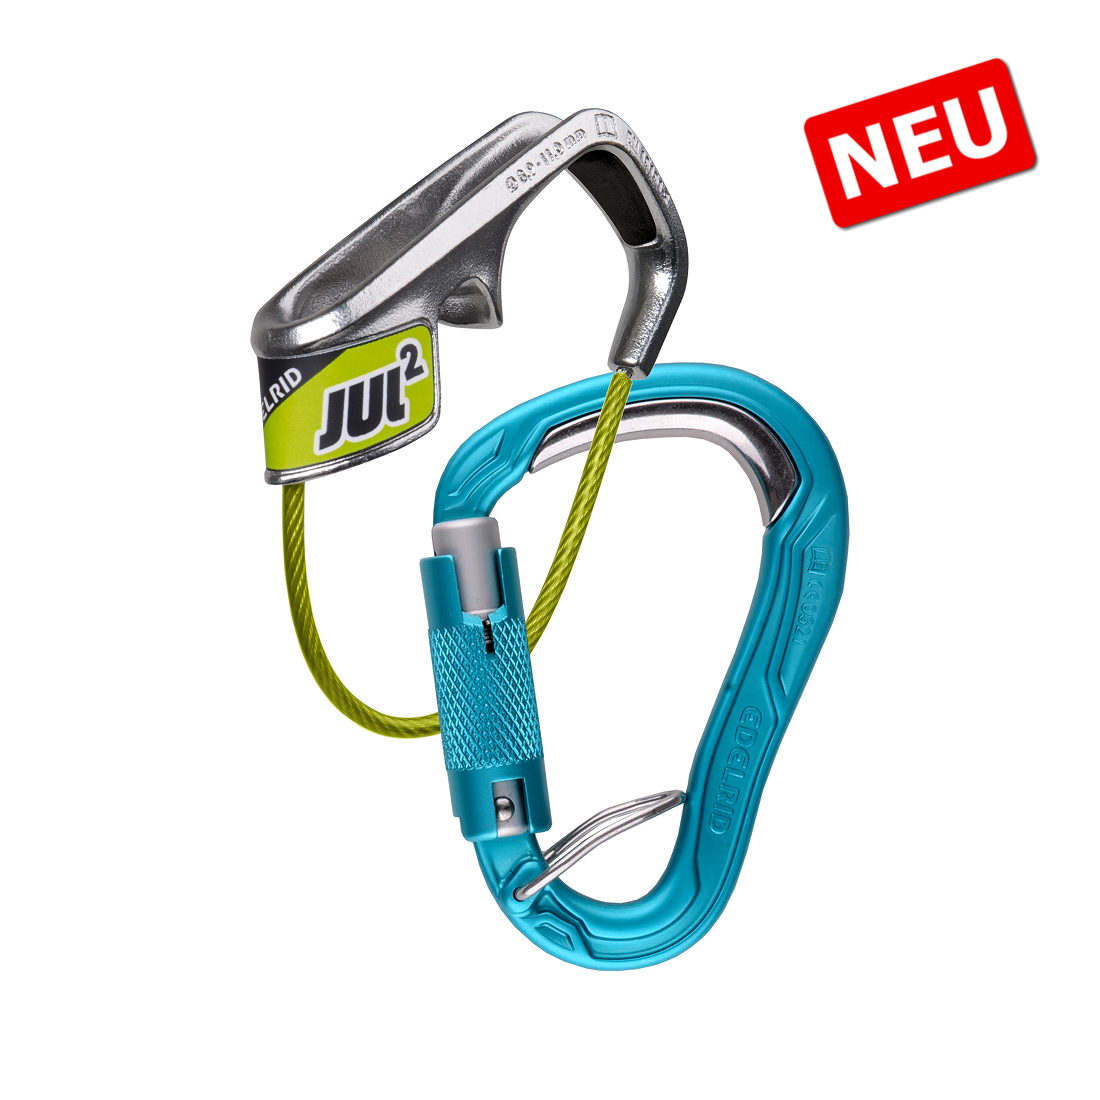 EDELRID Jul 2 Belay Kit bulletproof triple Sicherungsset